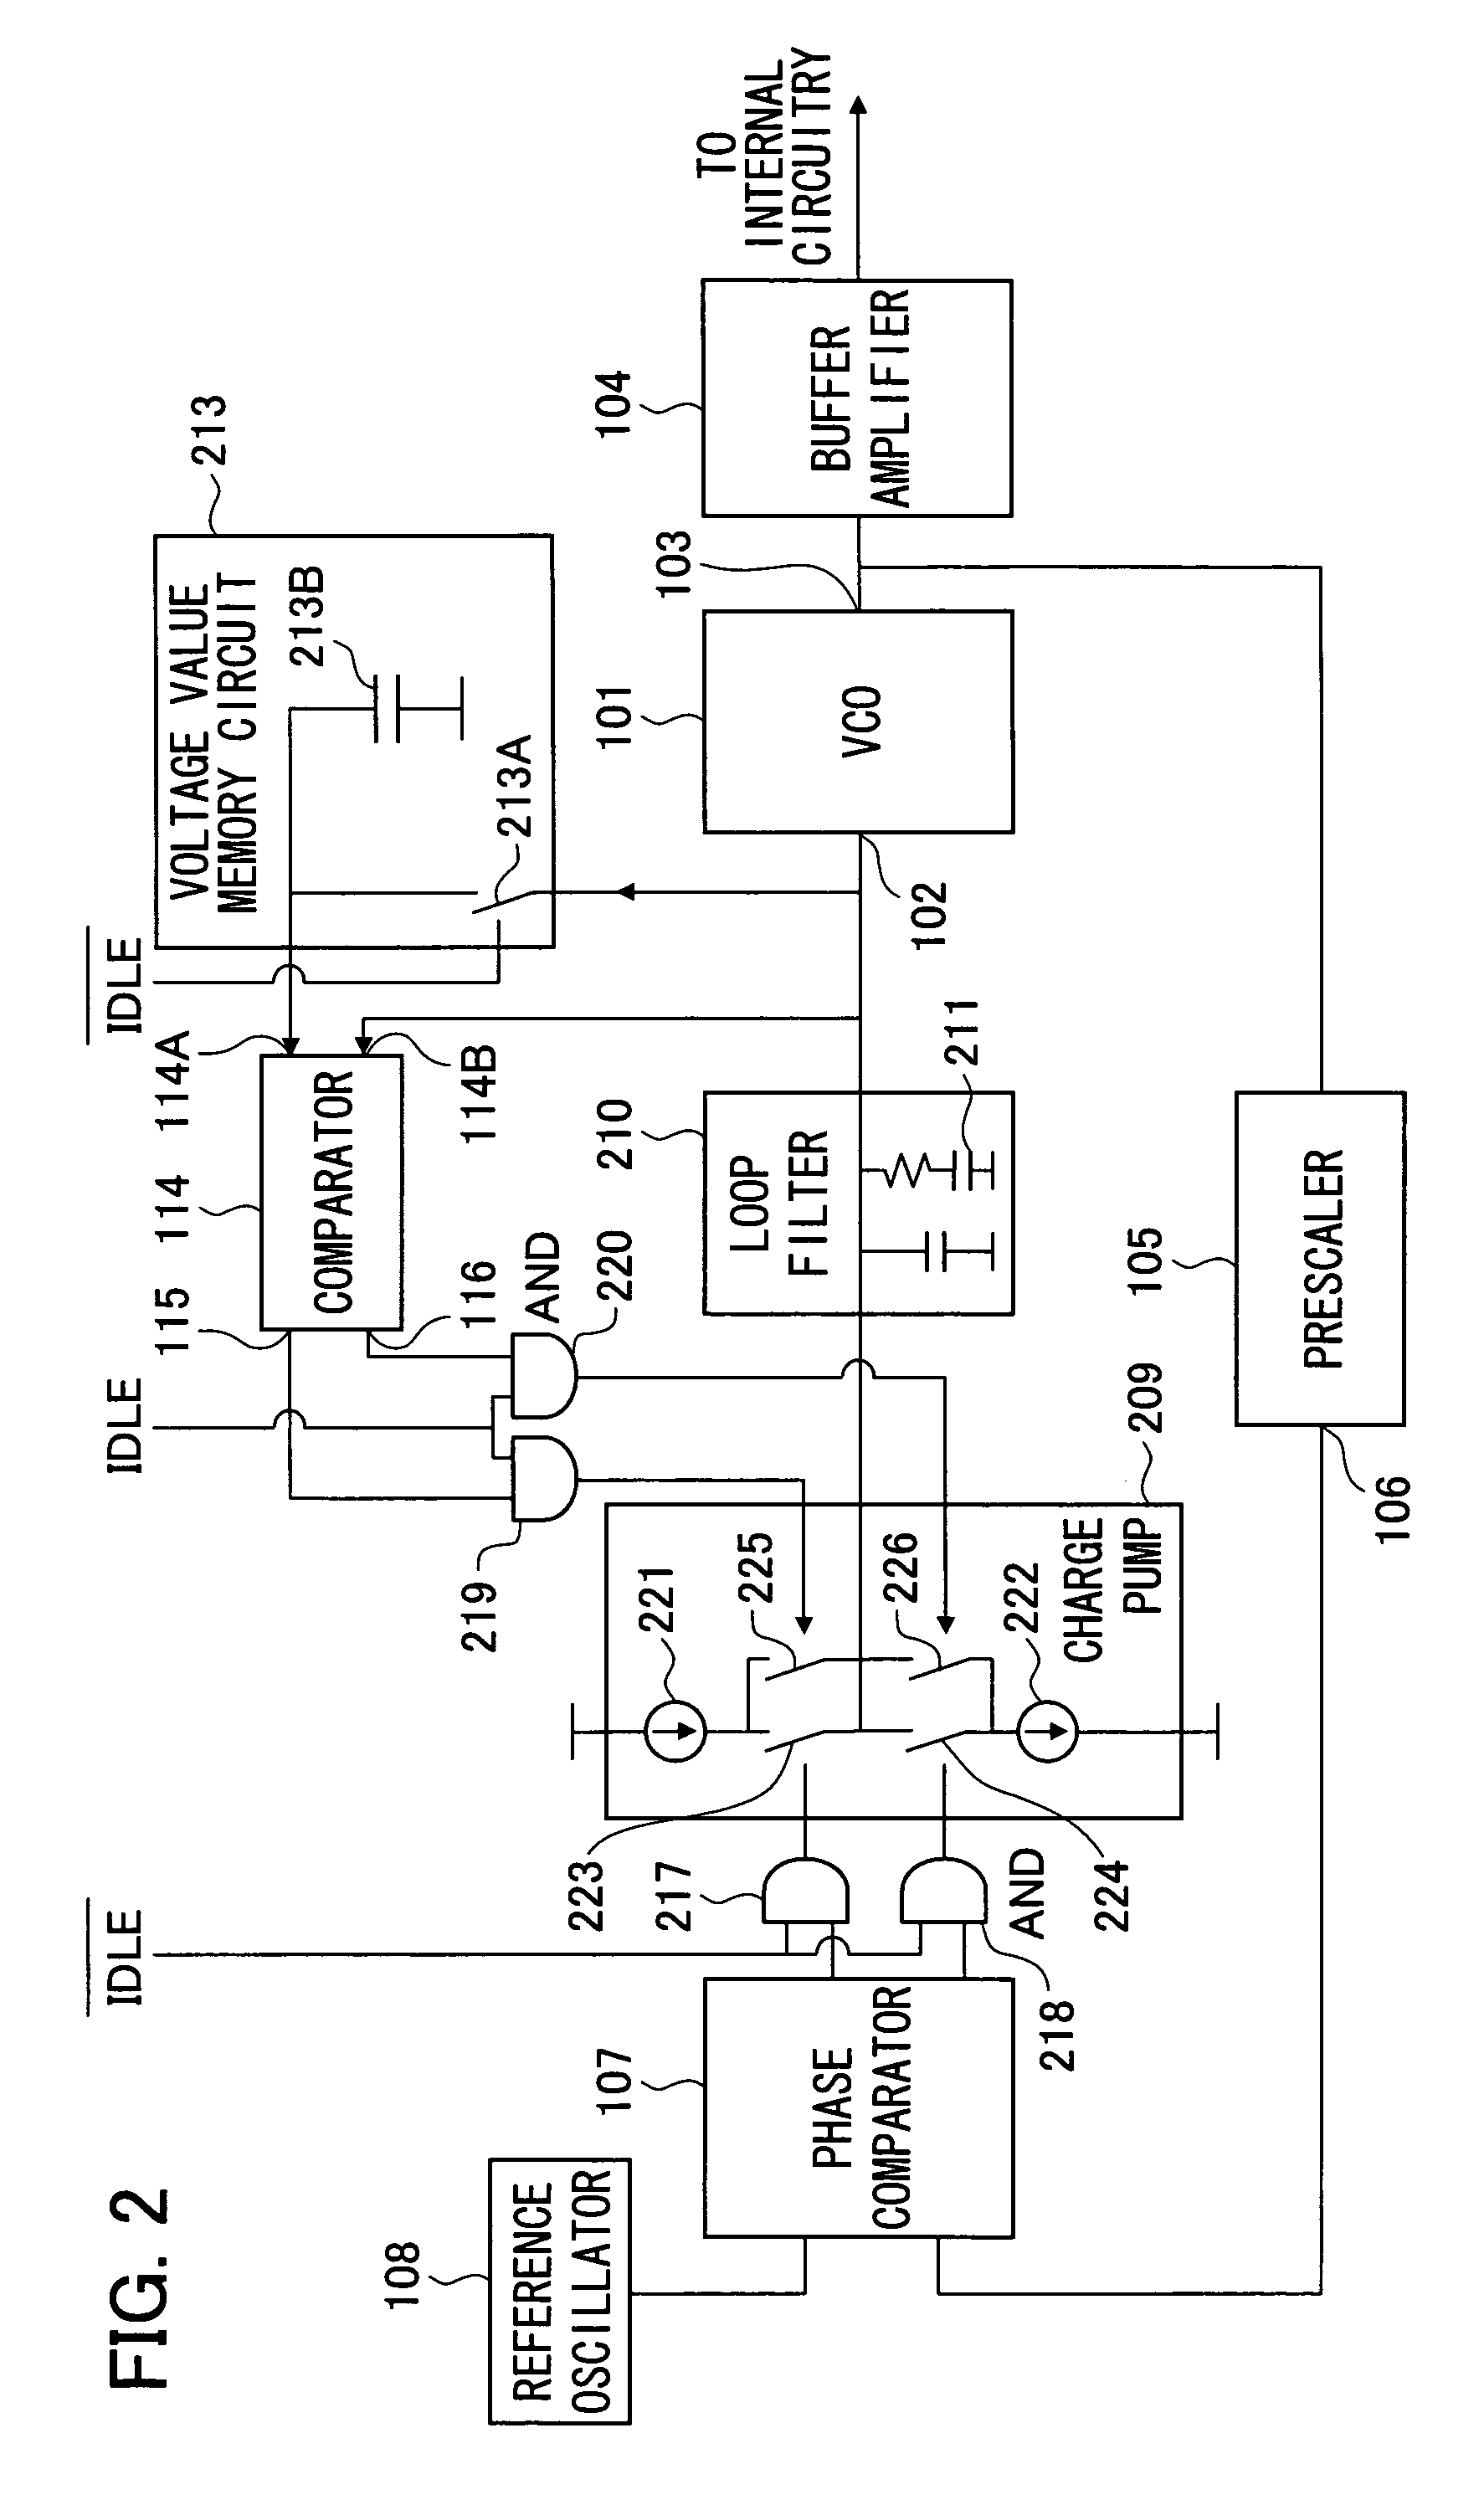 Brevet Us7551037 Pll Circuit Having Reduced Pull In Time Google Vco Diagram Patent Drawing